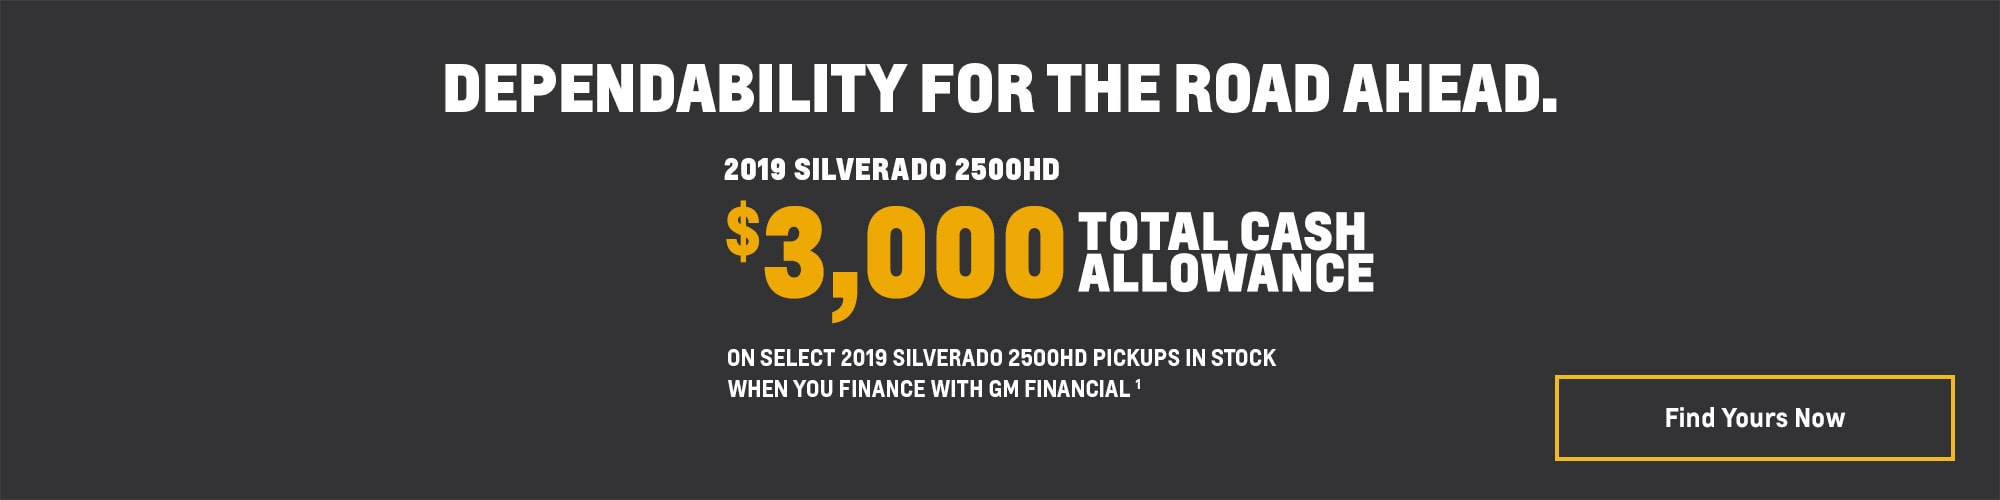 2019 Silverado 2500HD Pickup Truck Deals and Offers